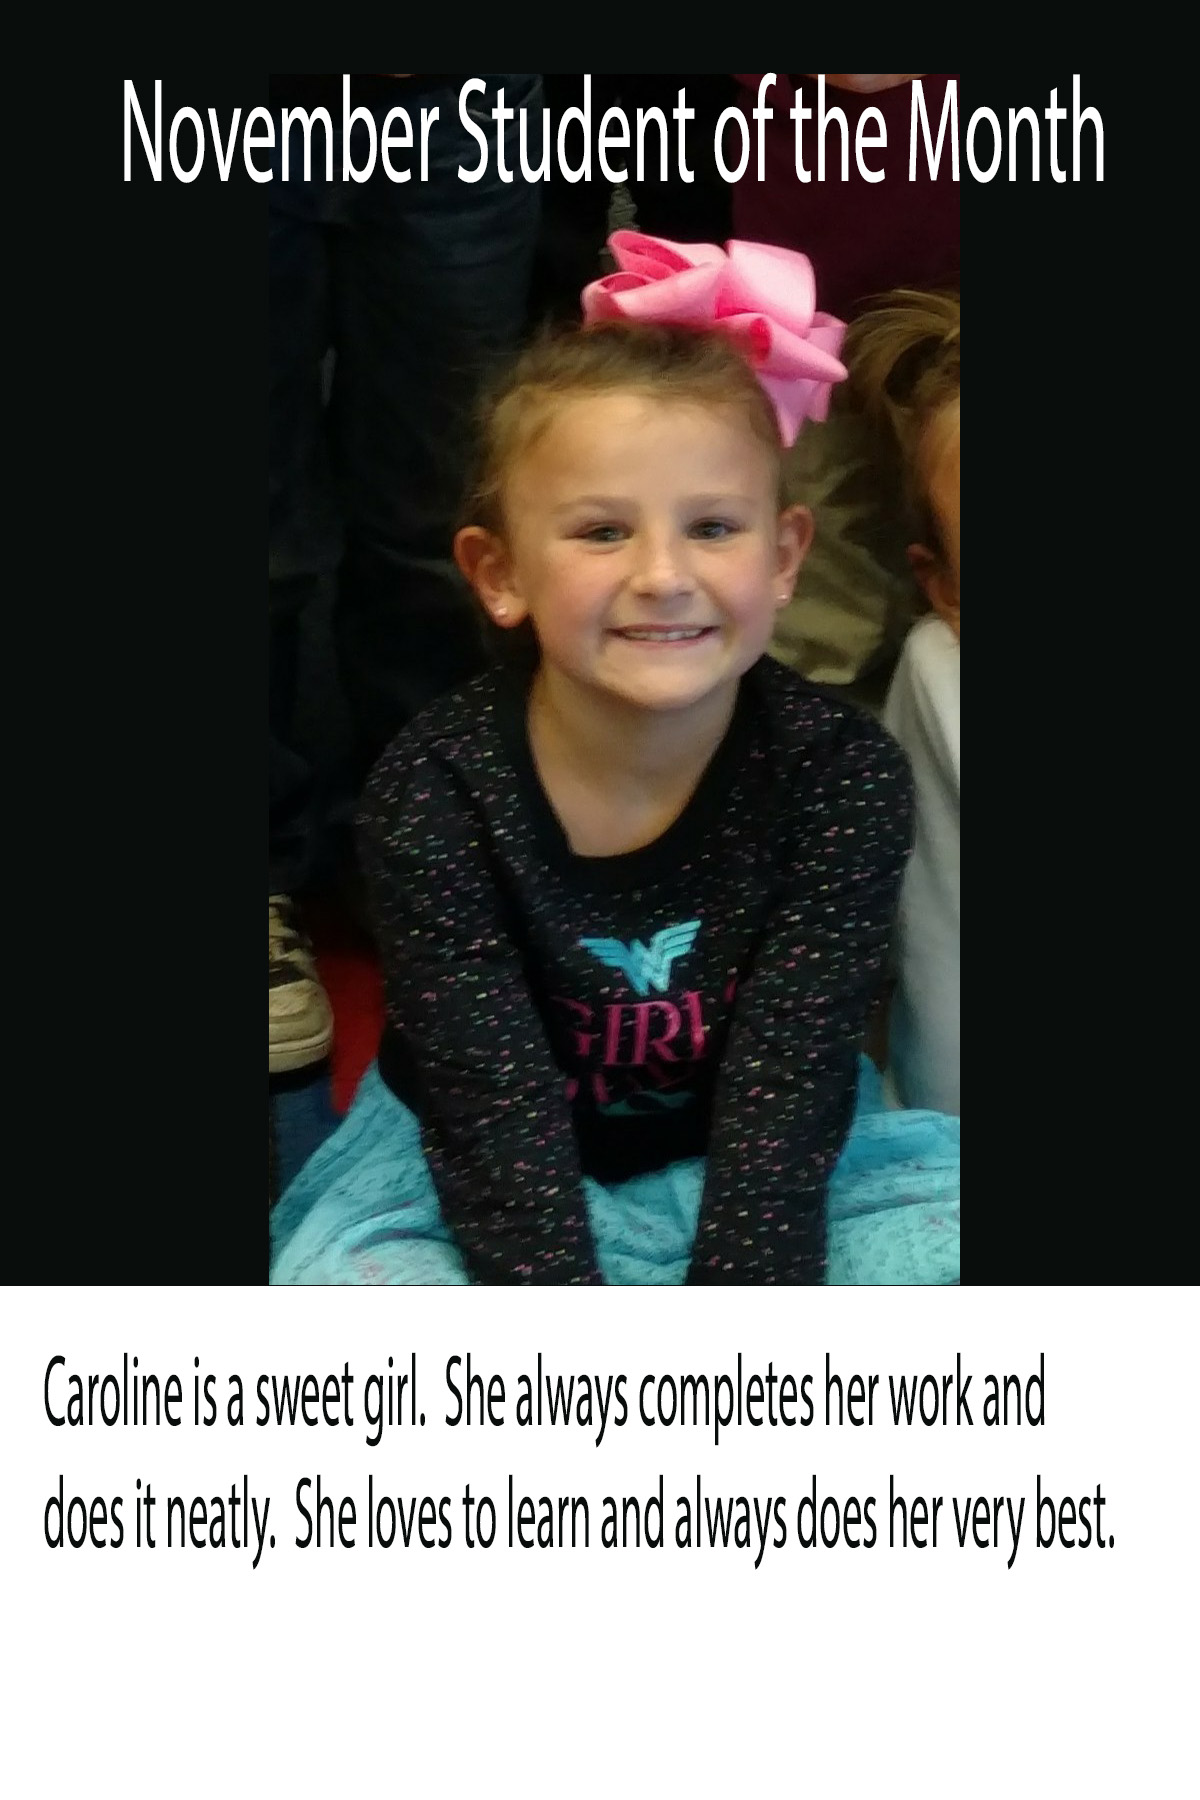 Mrs. Souhrada's November Student of the Month